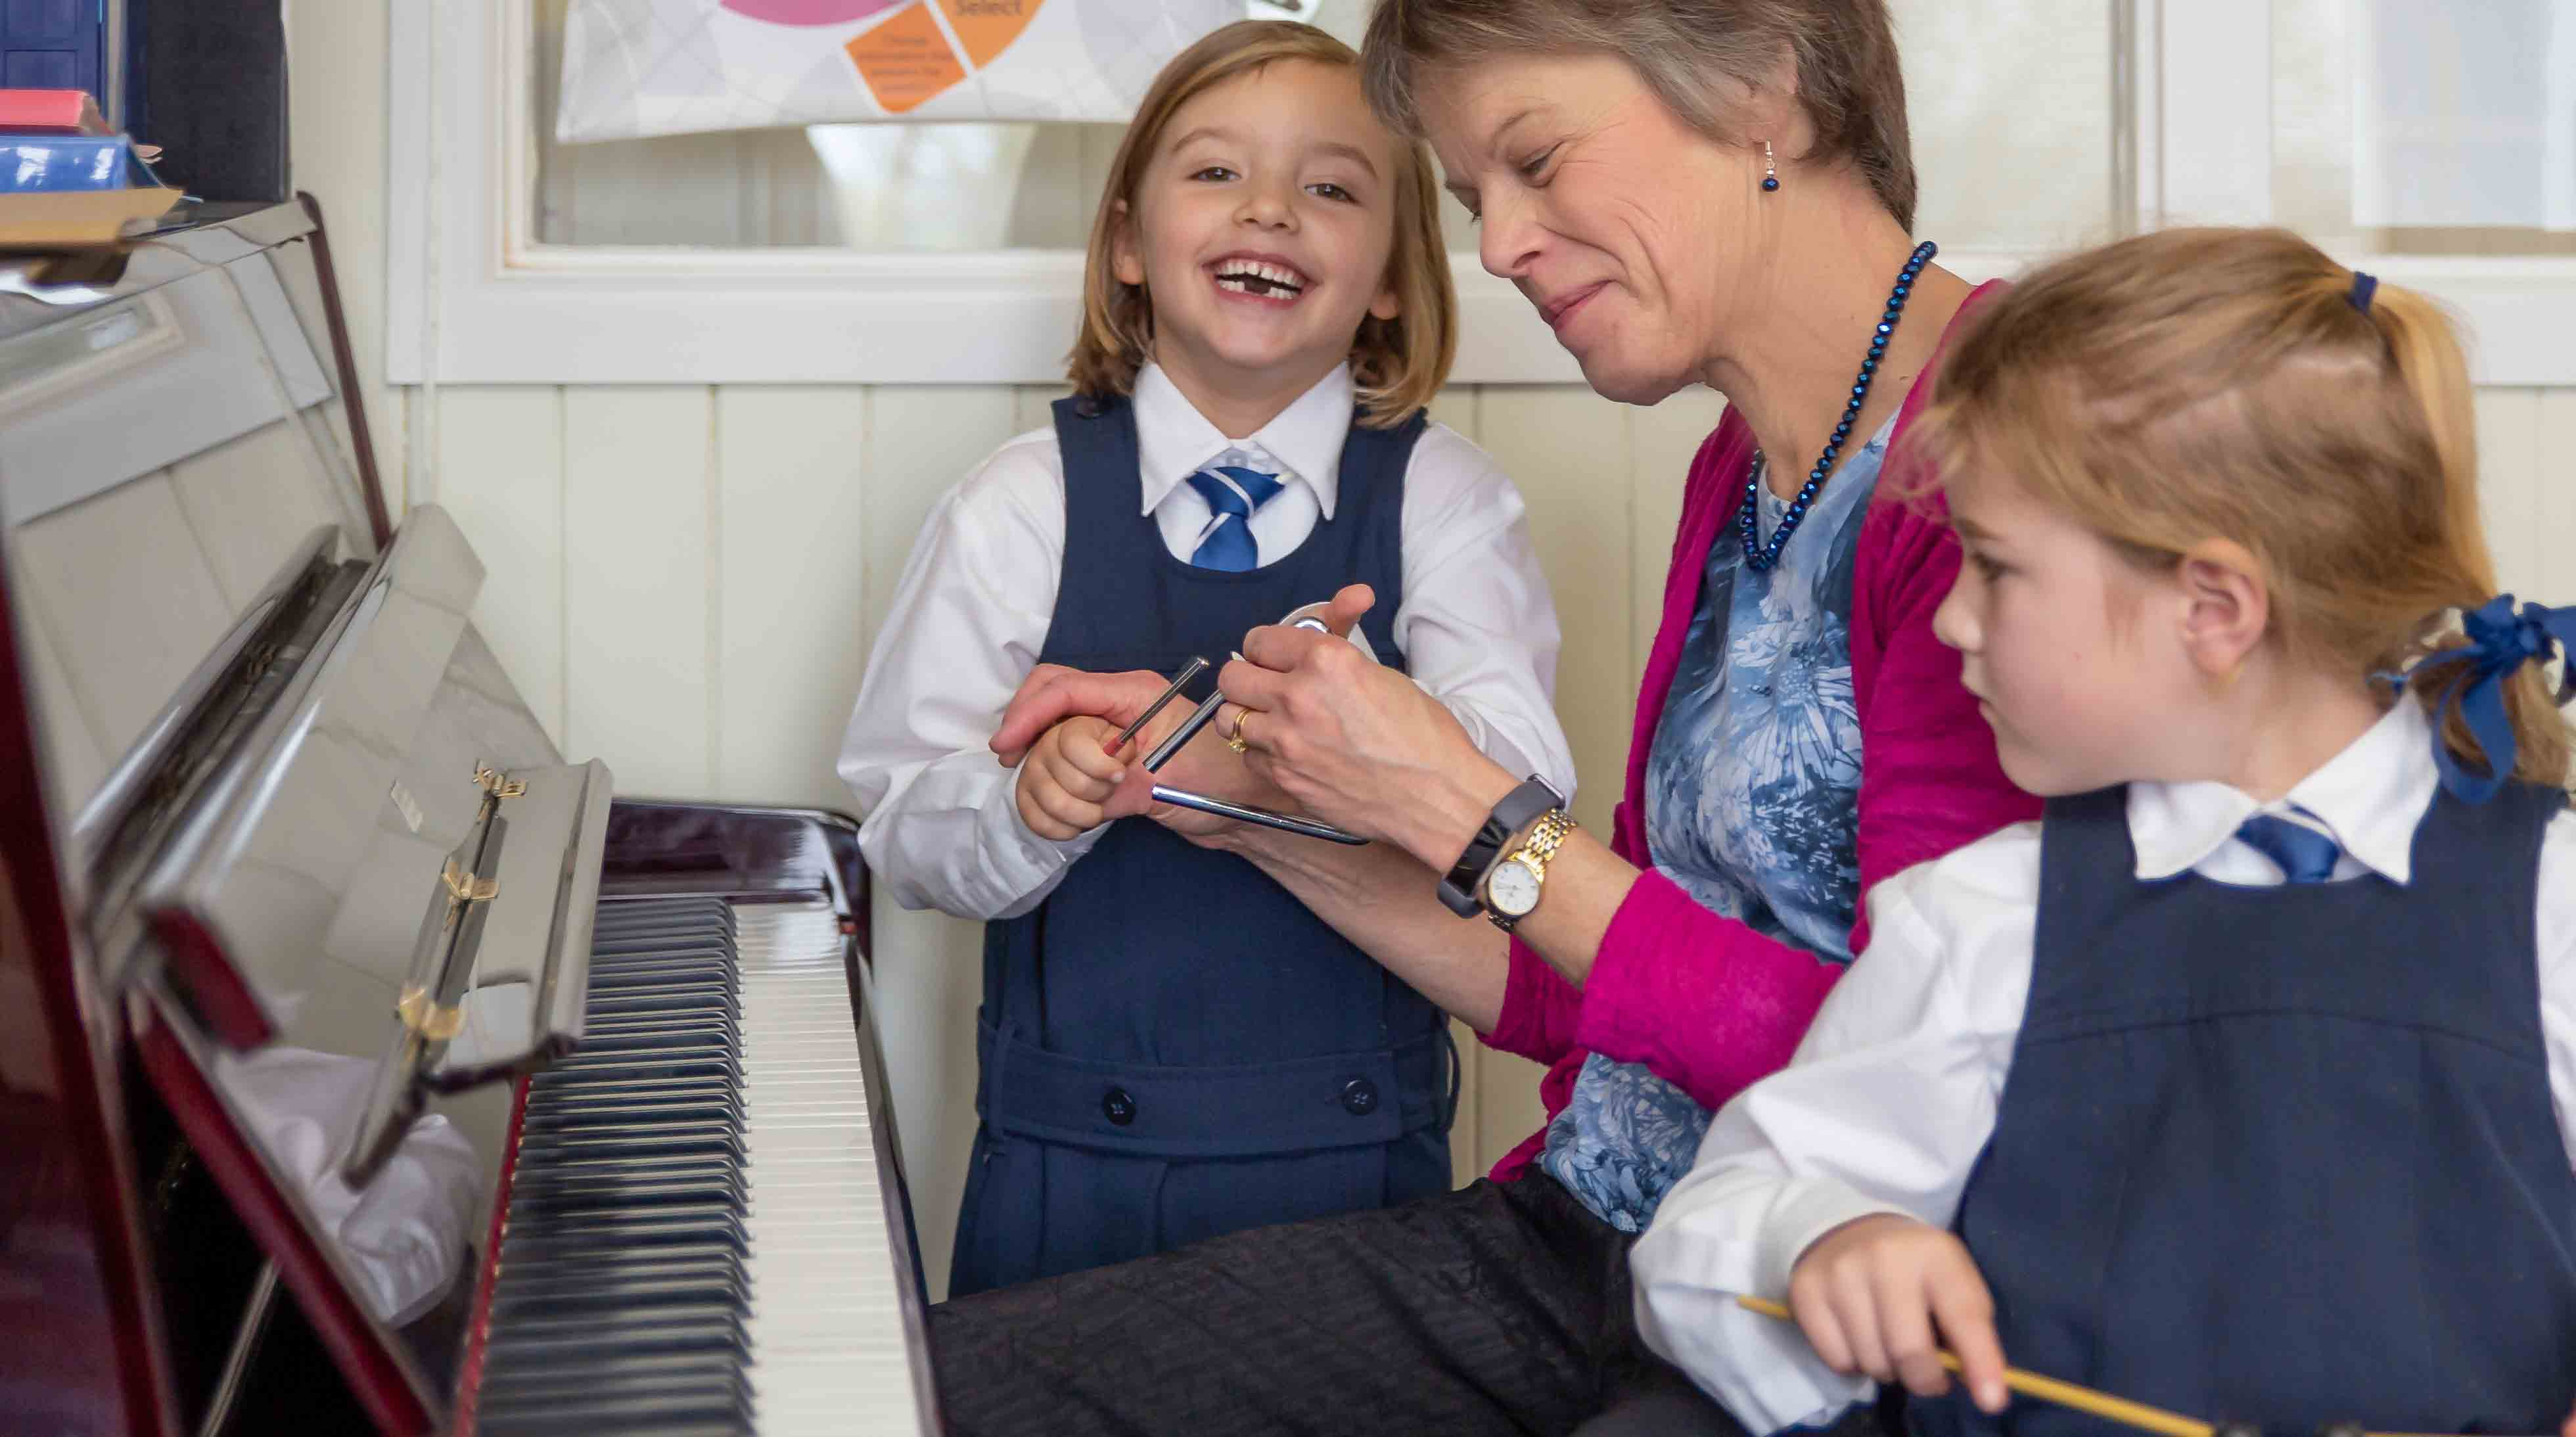 Saint-Kentigern-Girls-School-Music-Programme-for-Girls.jpg